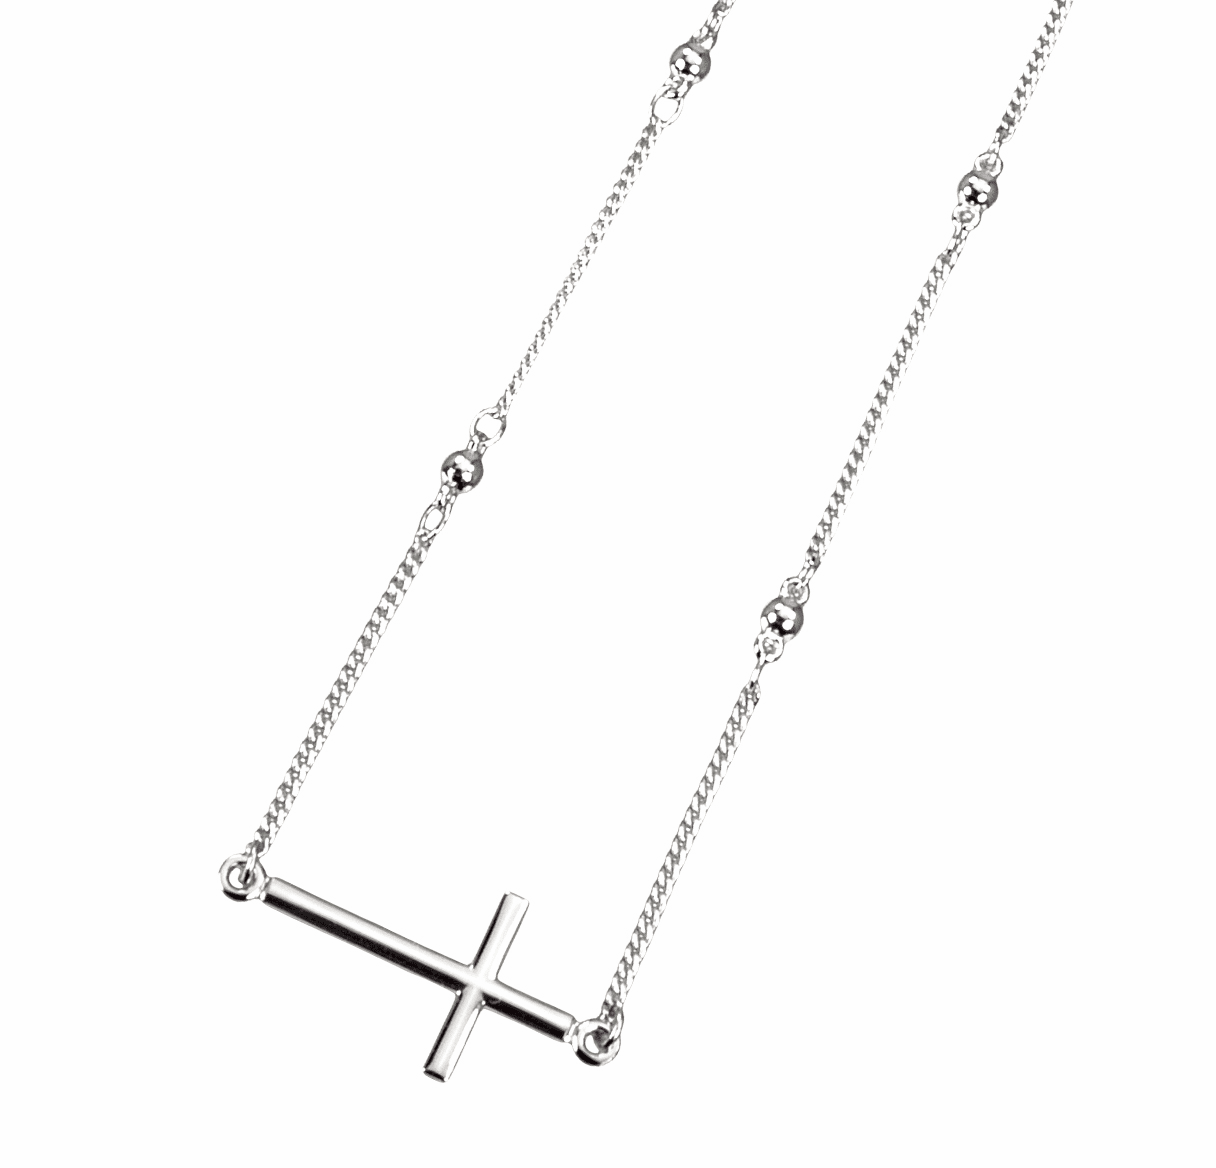 HMH Religious Christian Side Cross Sterling Silver Beaded Pendant Necklace